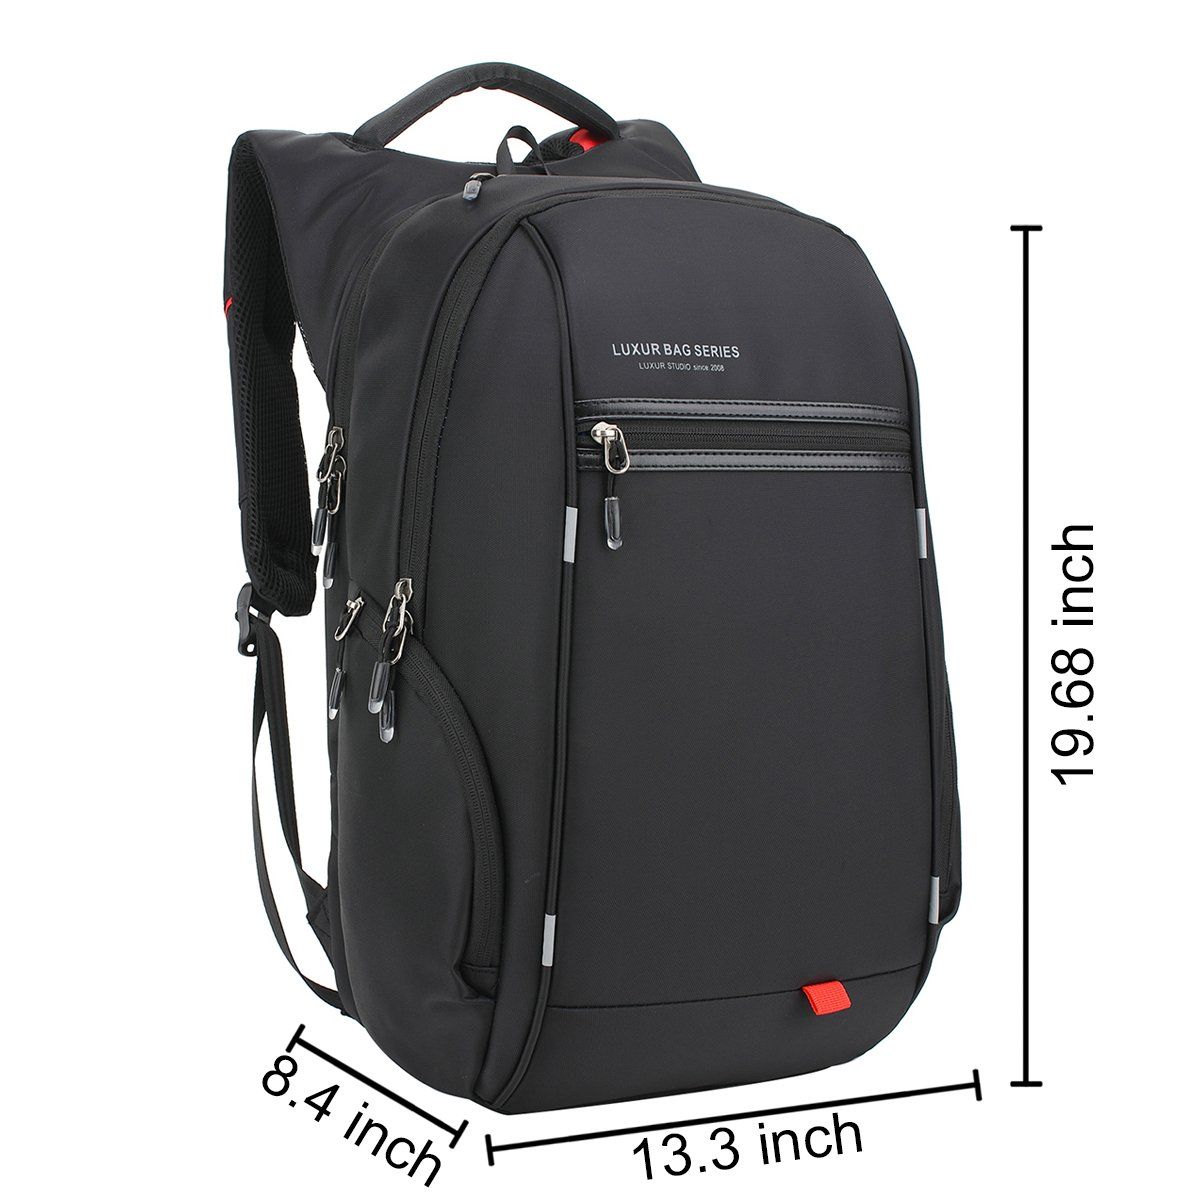 LUXUR 37L Nylon Waterproof Laptop Backpack Casual School Business Travel Daypack